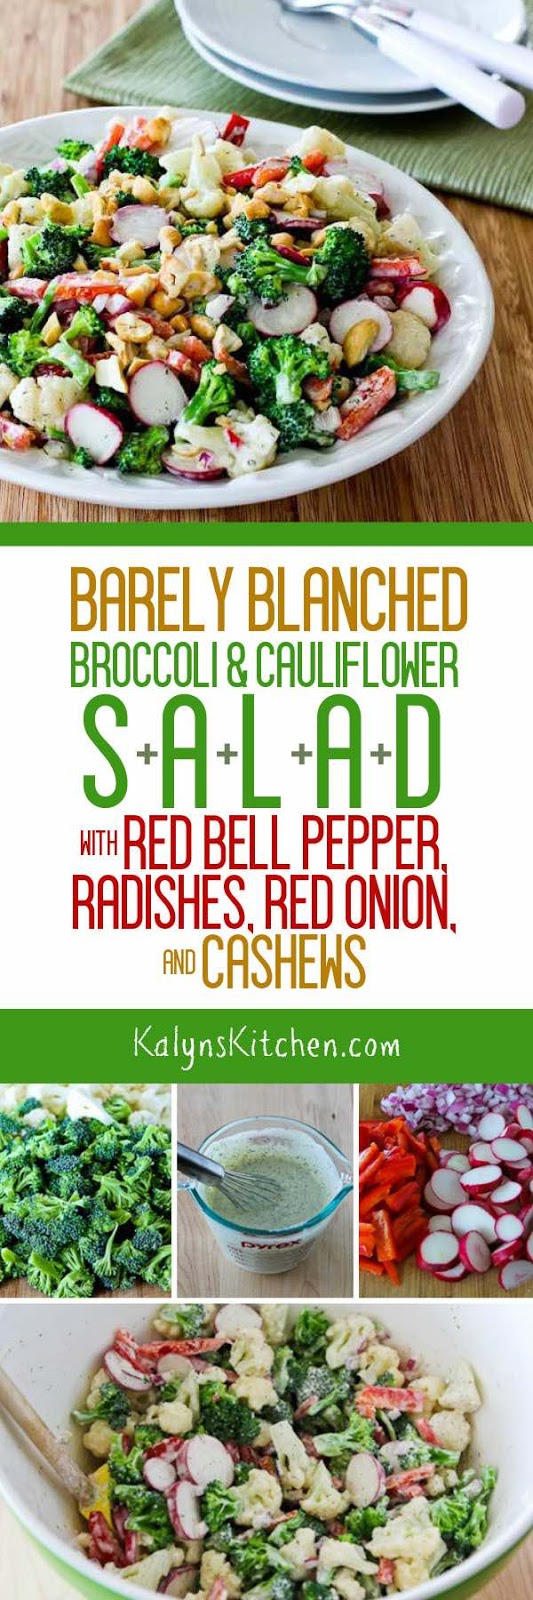 Barely Blanched Broccoli and Cauliflower Salad with Red ...